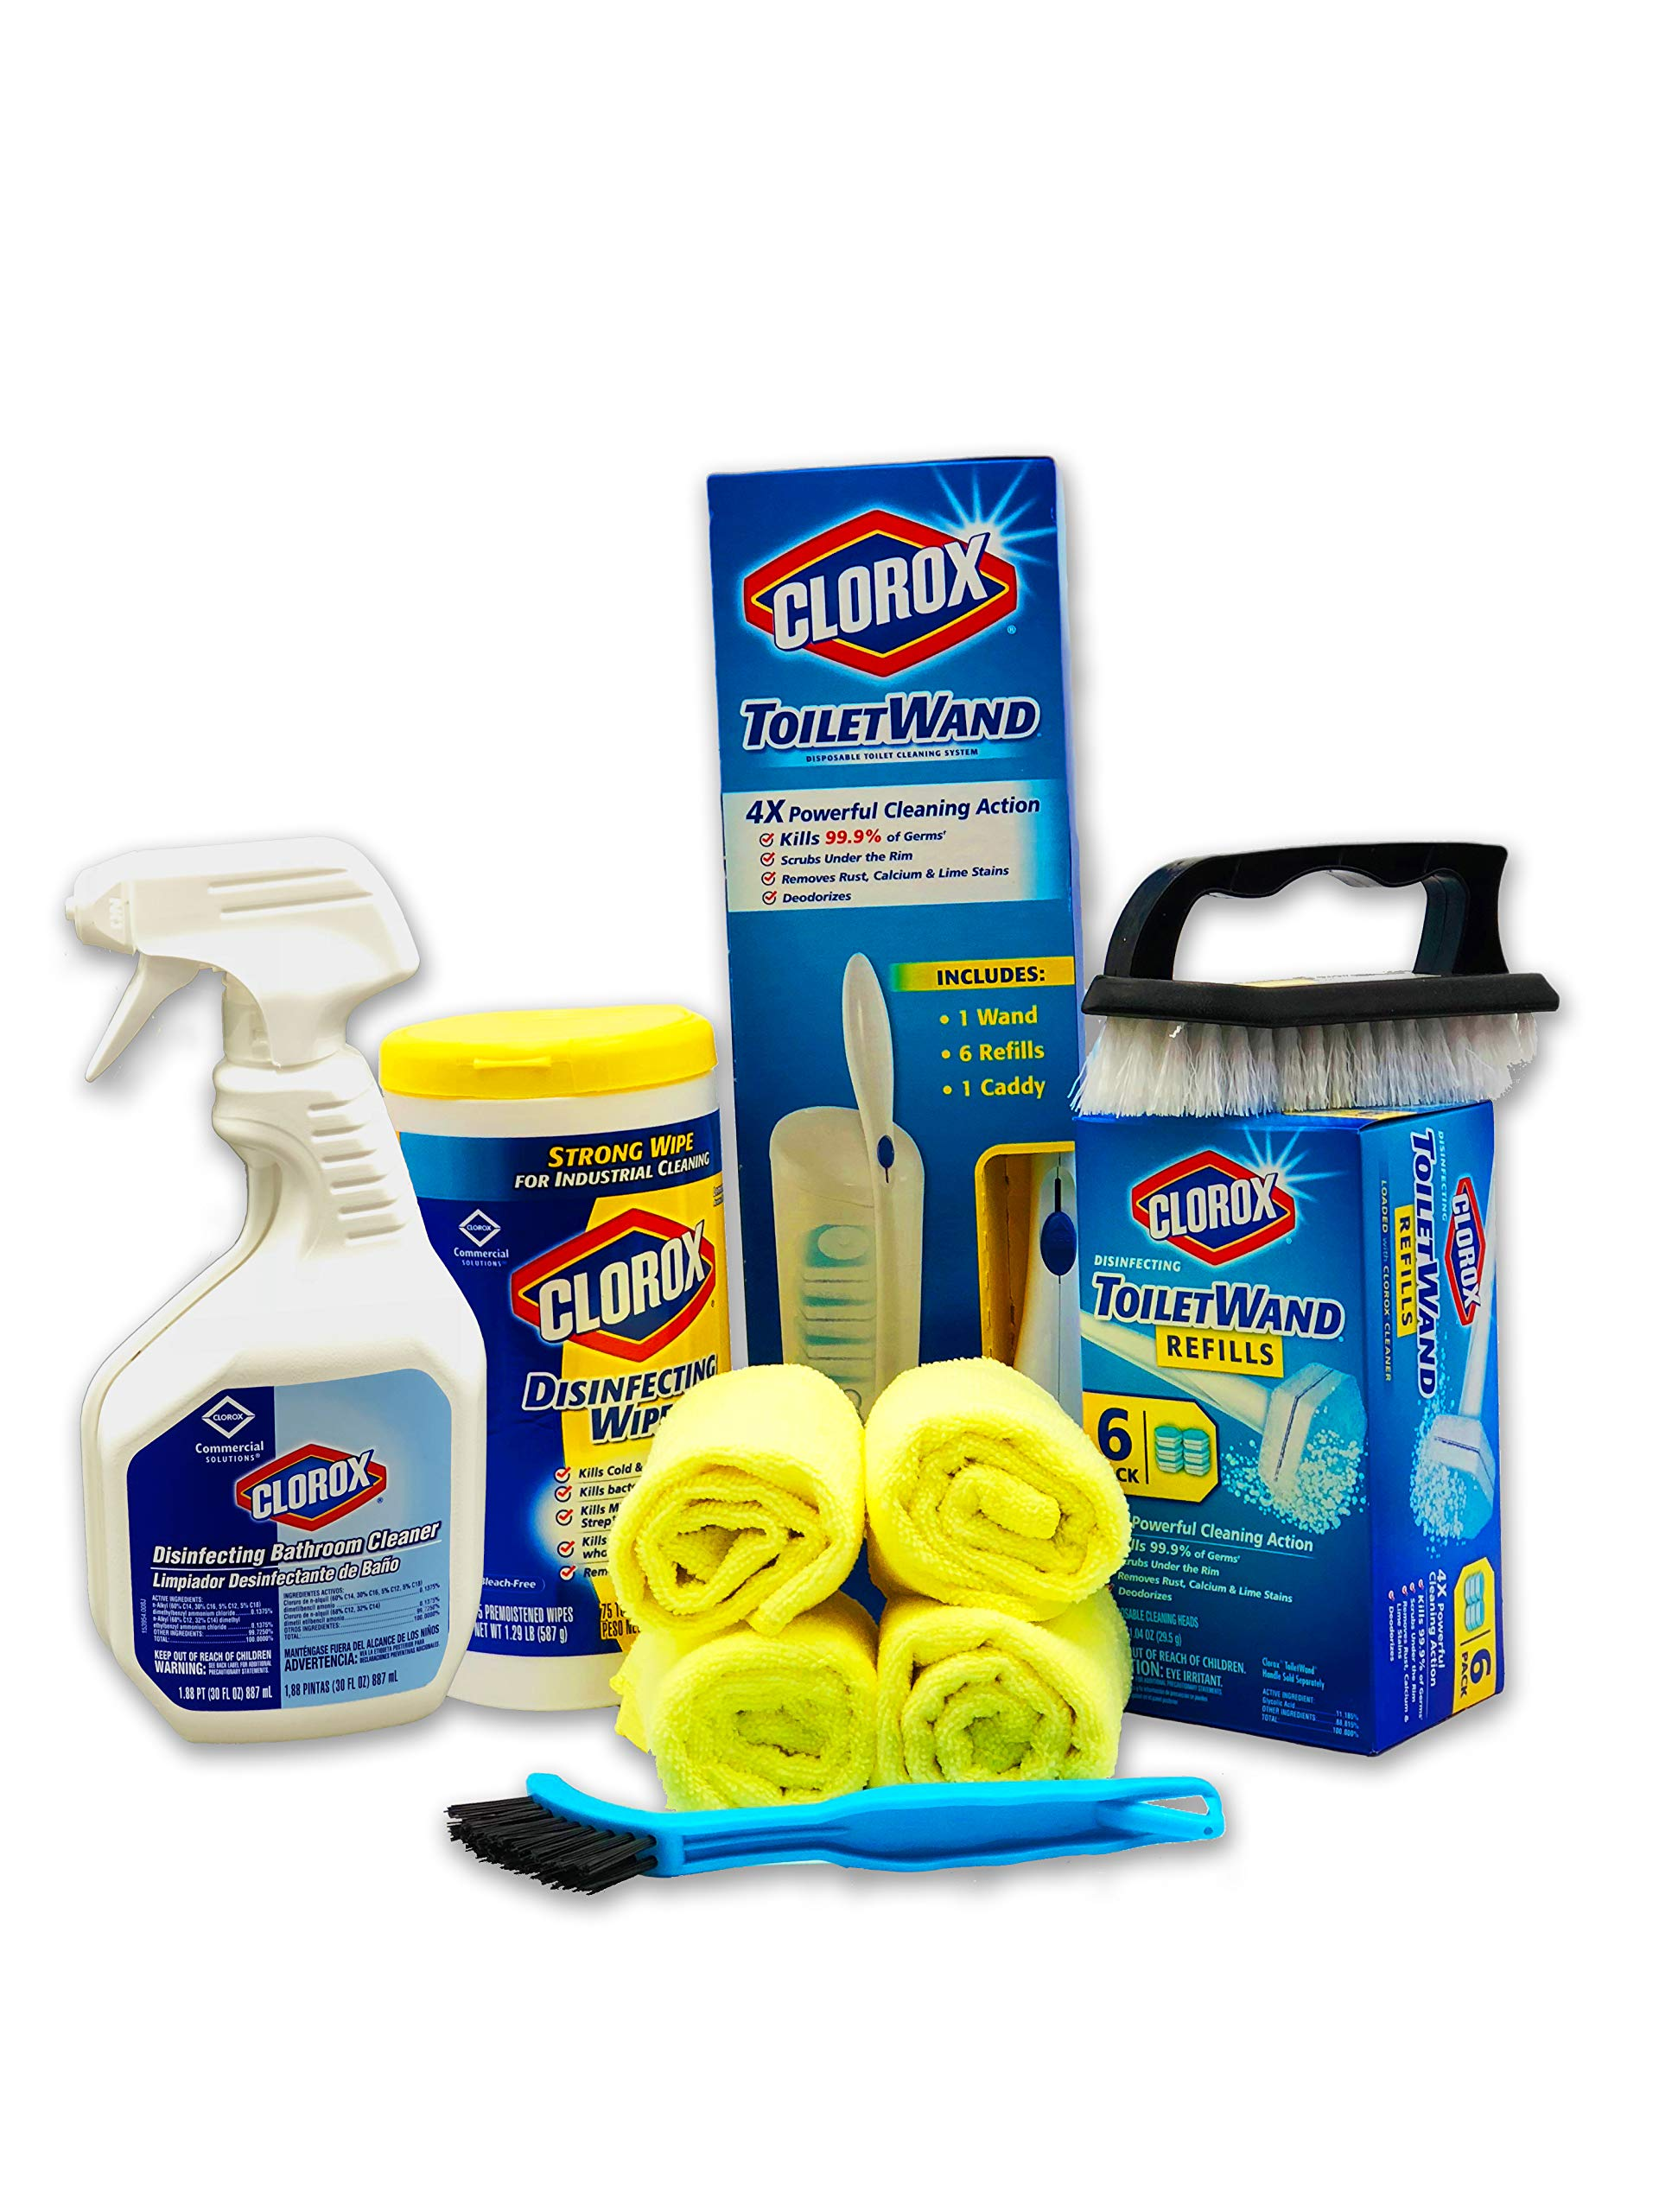 Clorox Products Bathroom Cleaning Kit 7 Piece Set by Clorox